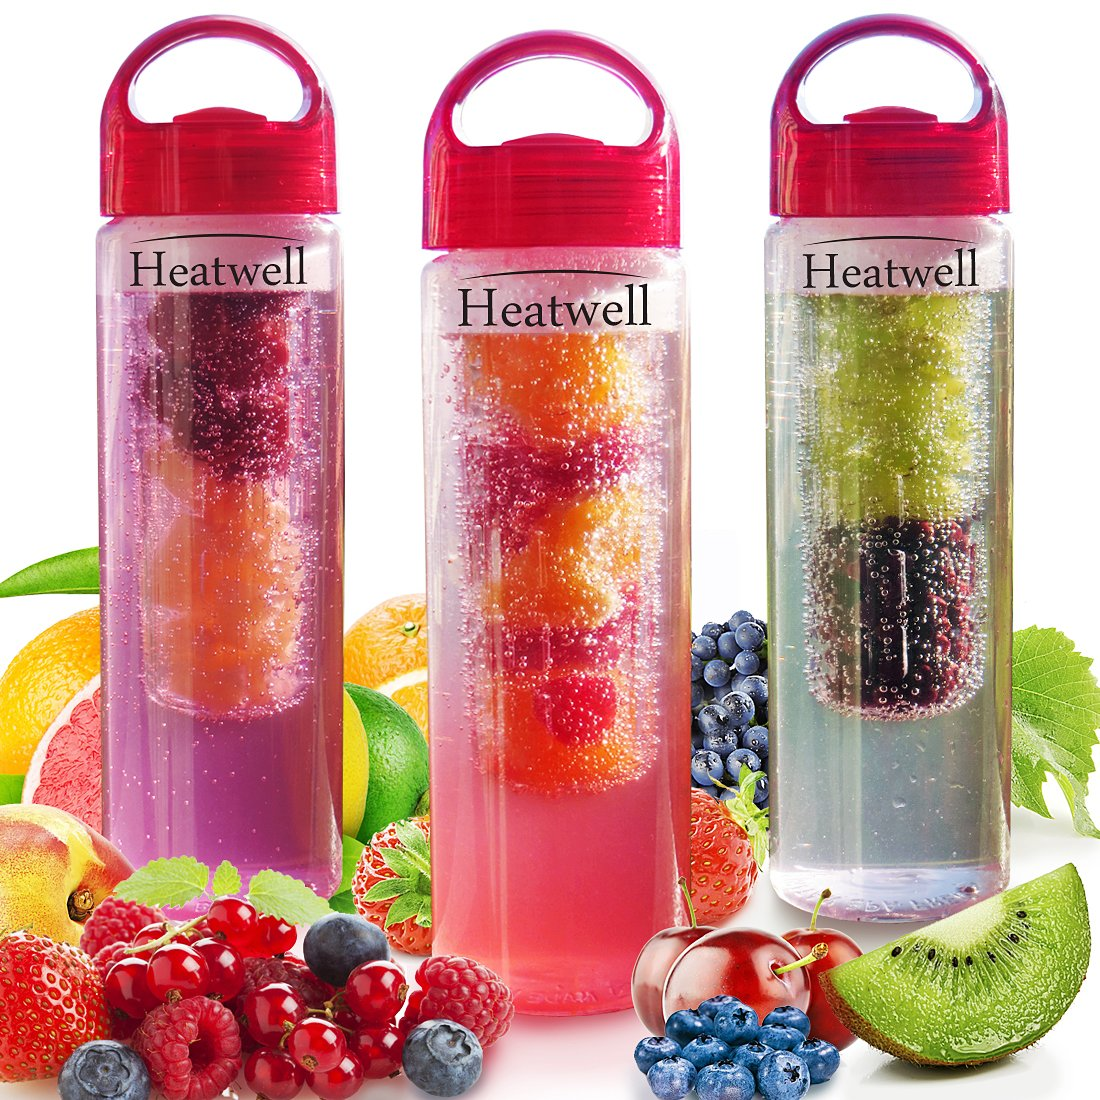 Heatwell Fruit Infuser Bottle for Flavored